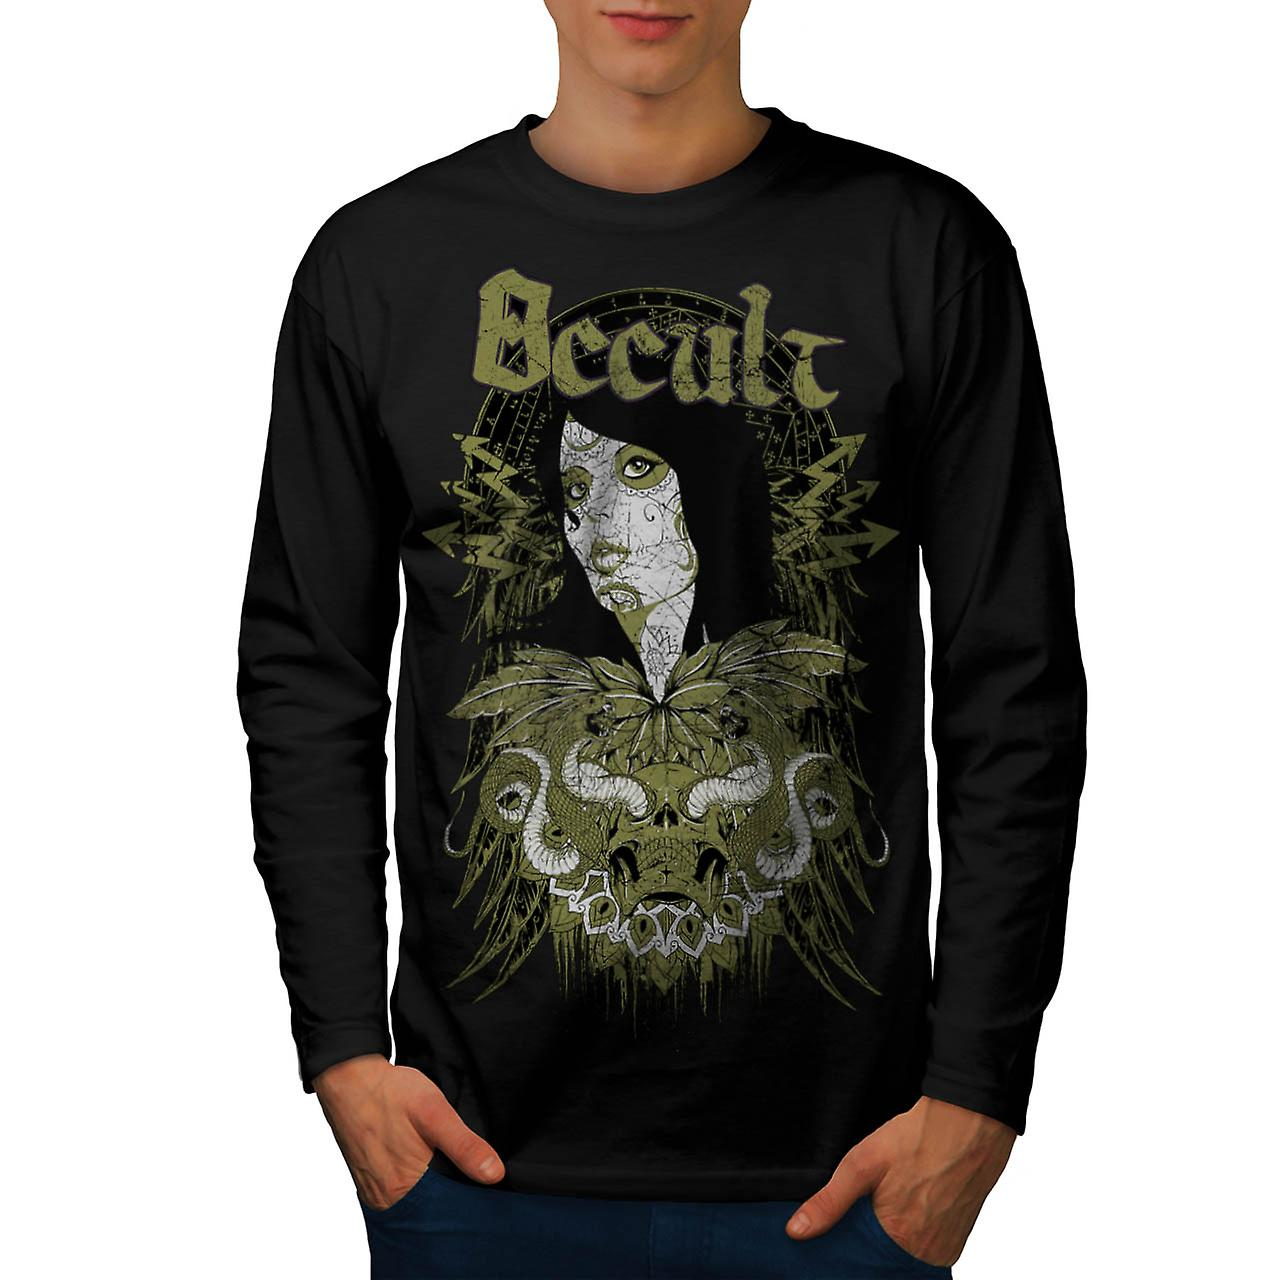 Occult Cult Lady Girl Pout Model Men Black Long Sleeve T-shirt | Wellcoda